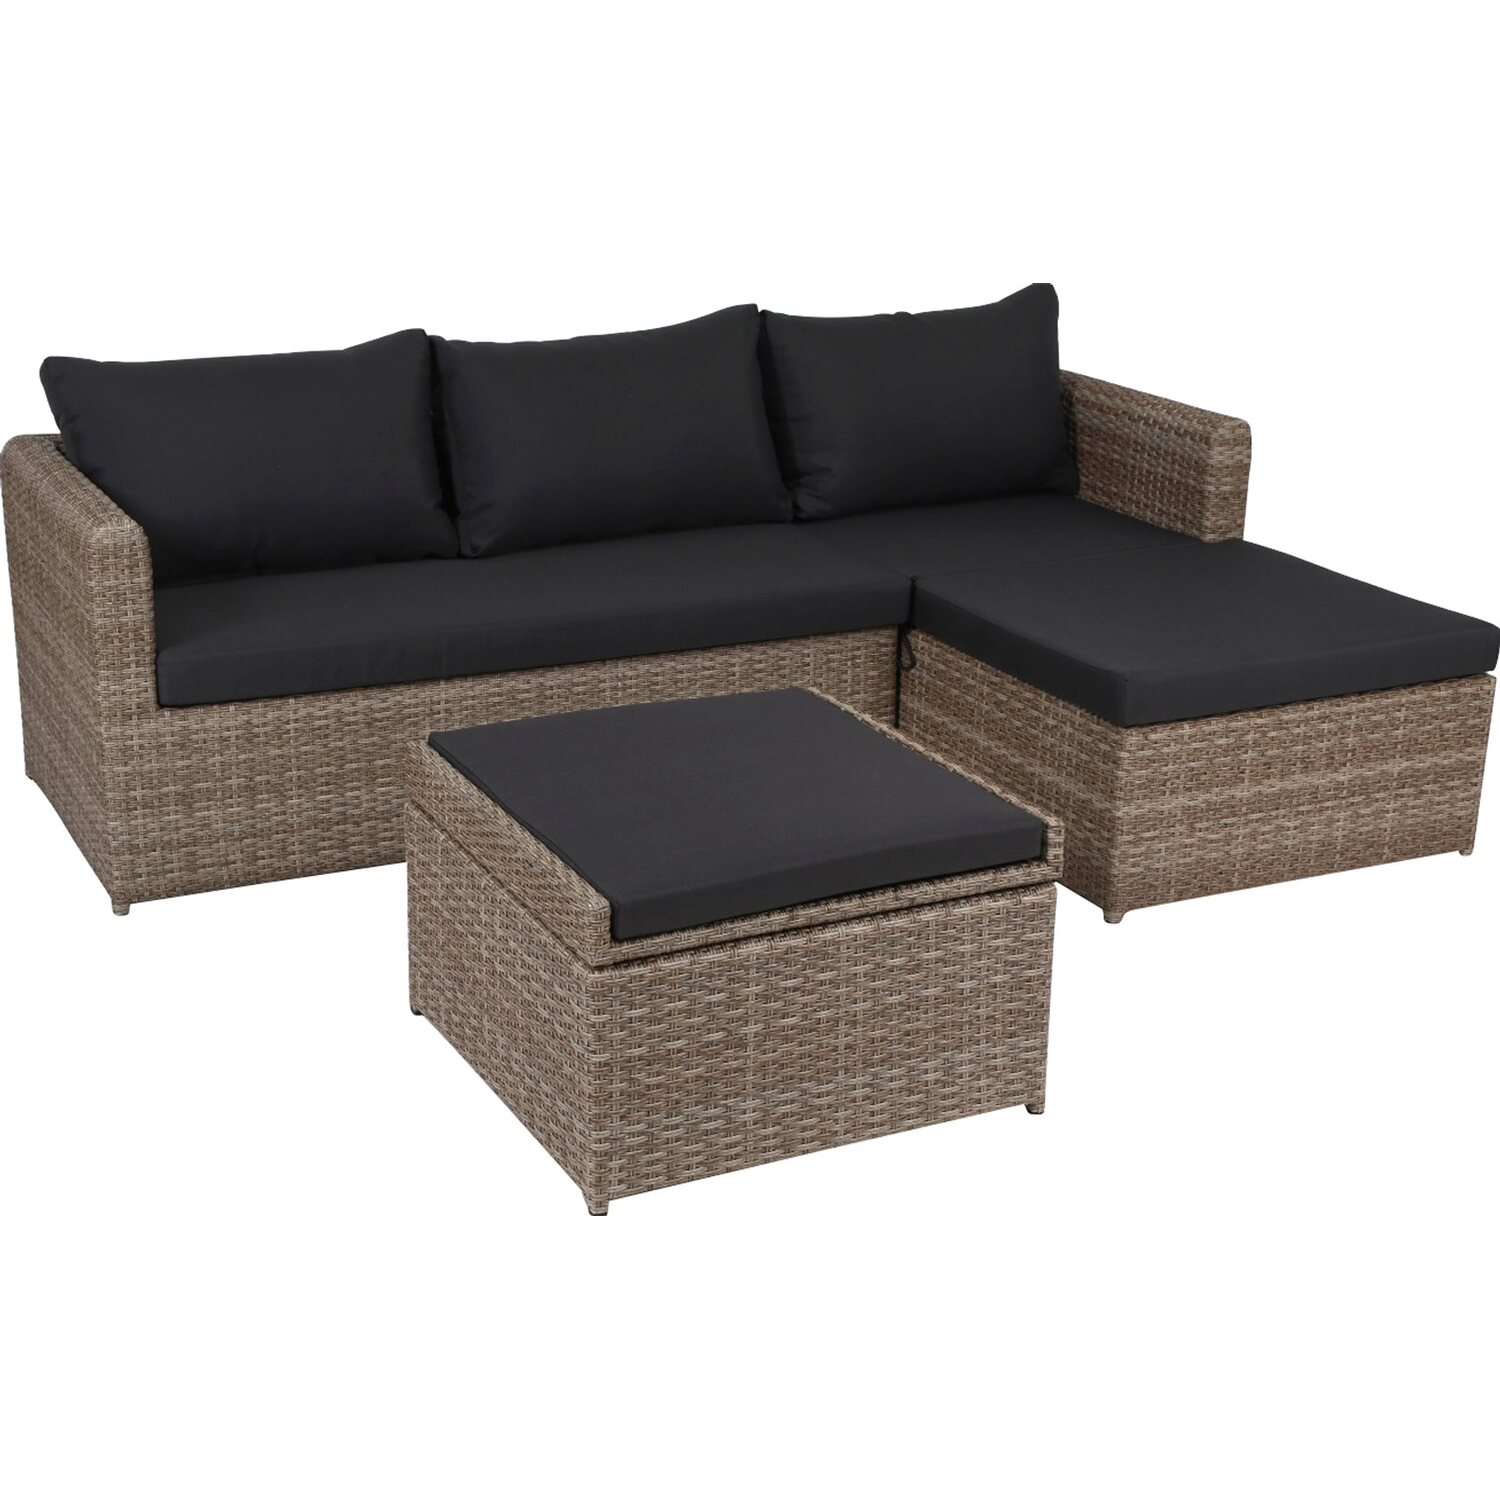 gartenm bel aus rattan yk95 hitoiro. Black Bedroom Furniture Sets. Home Design Ideas